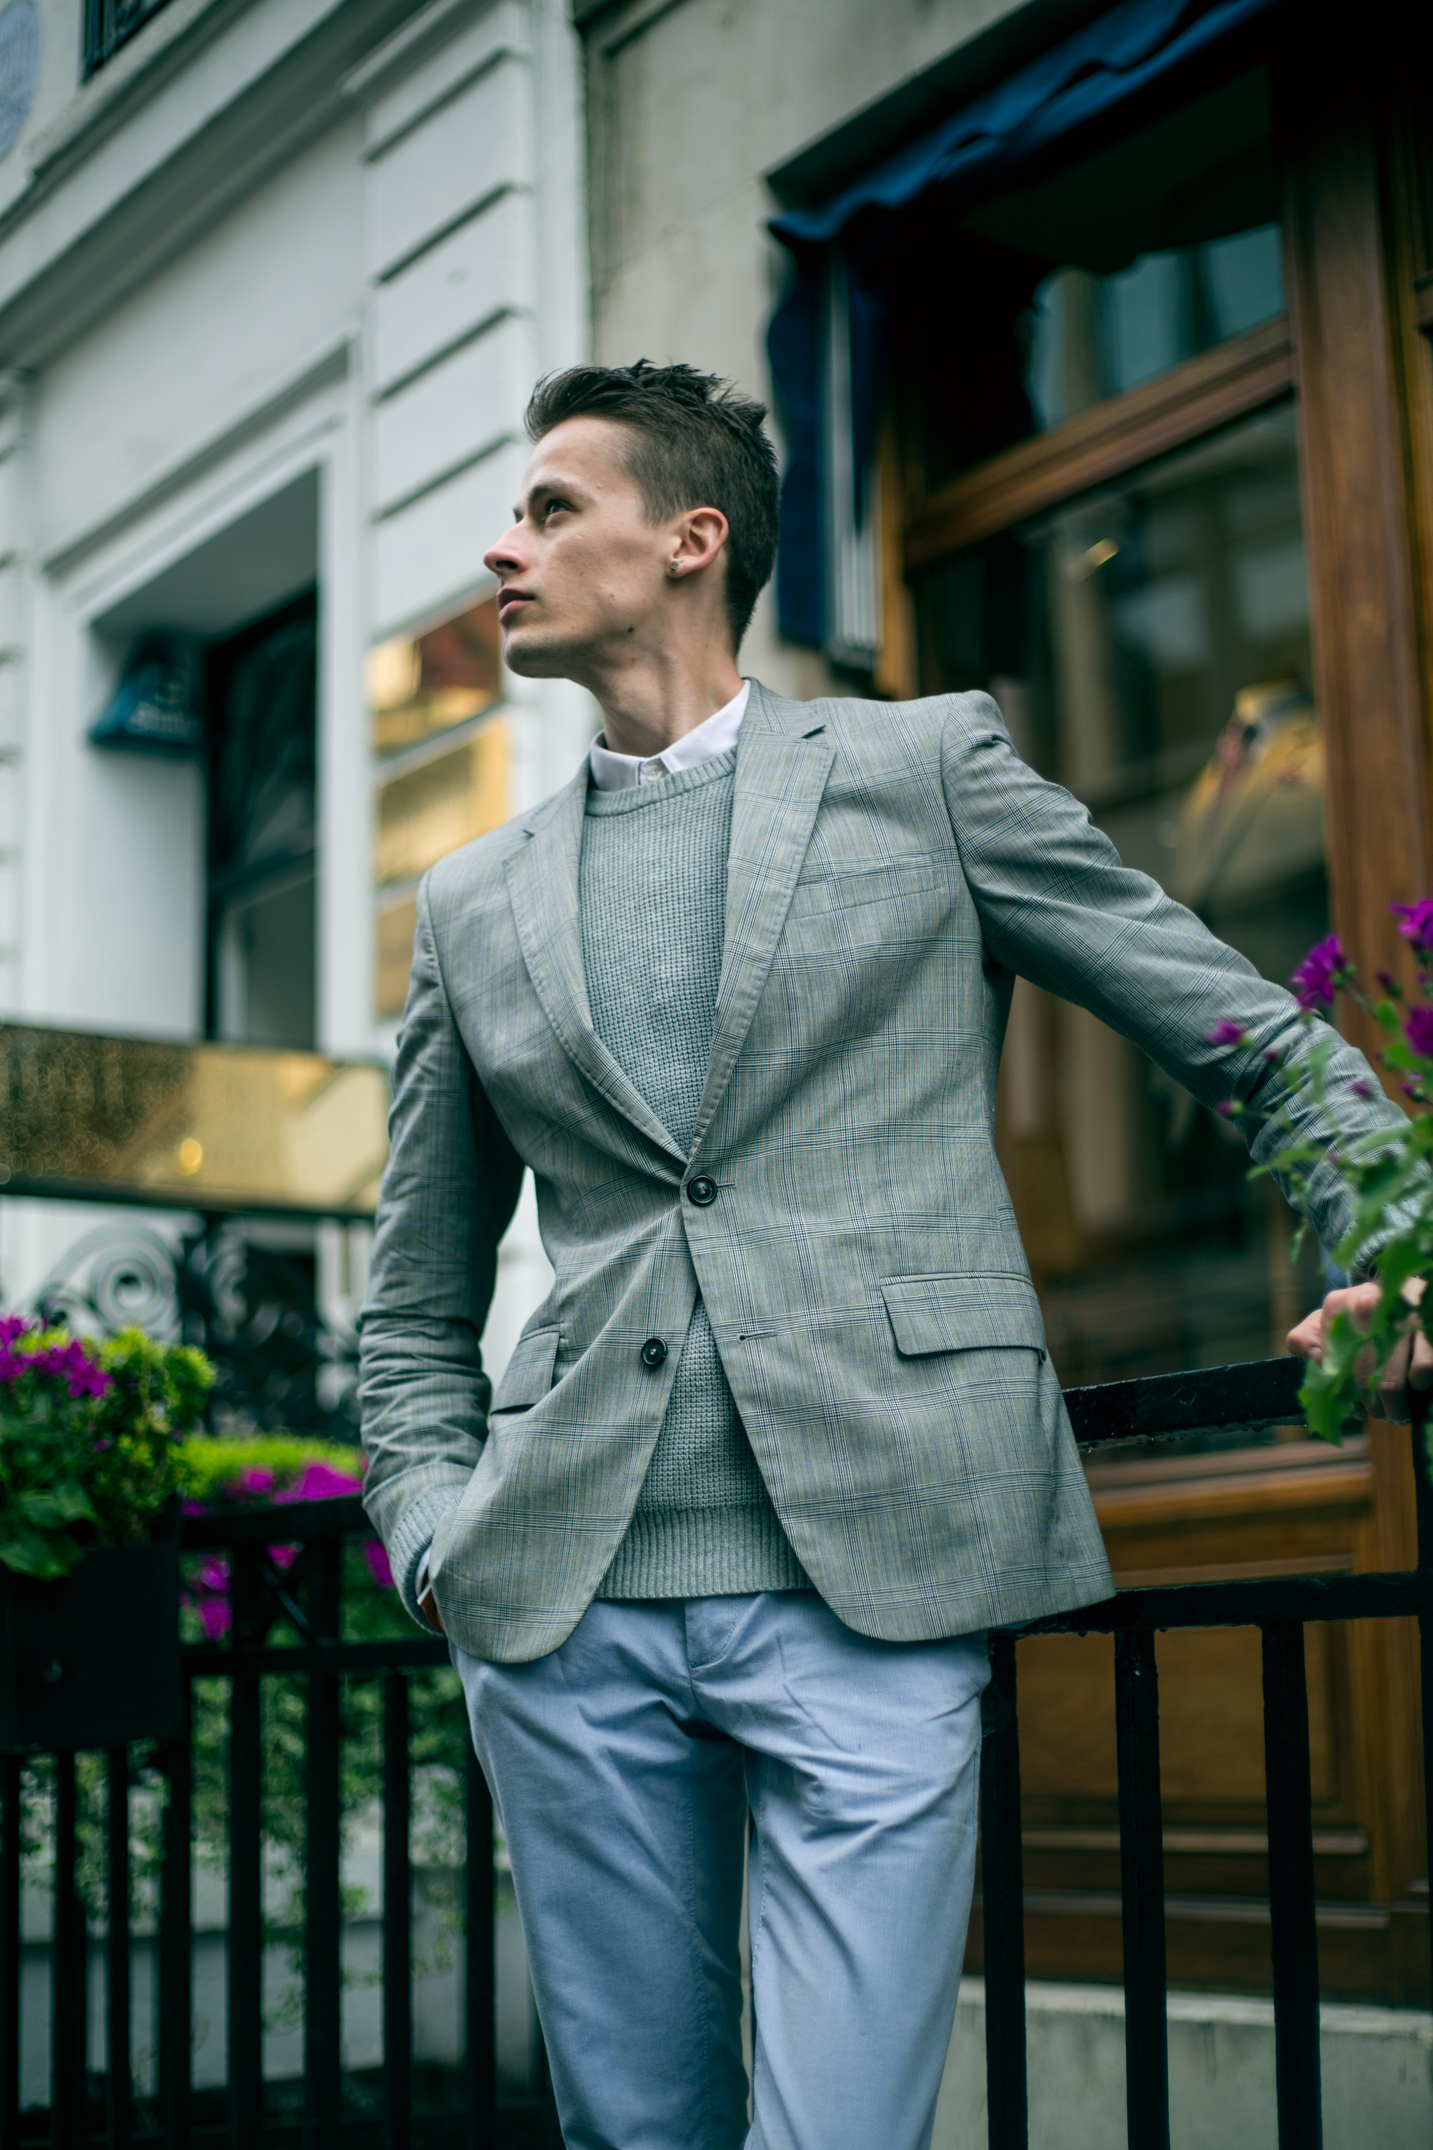 Jacket - Tailor4Less